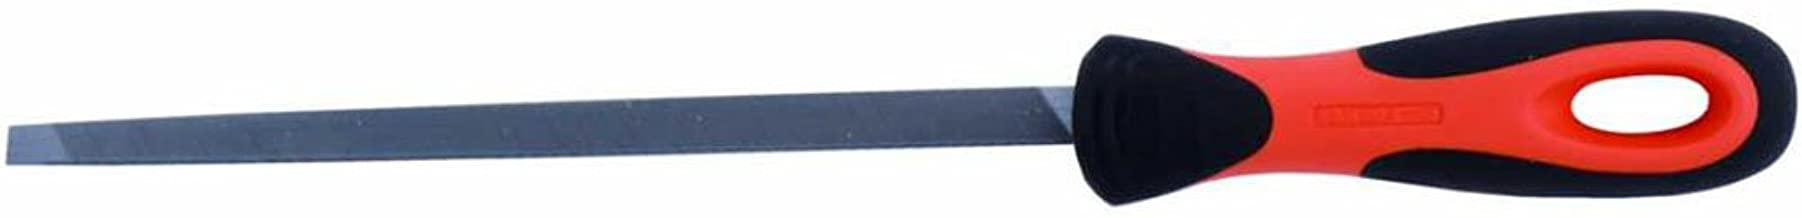 Bahco 4-187-06-2-2 X-Slim Taper Files, 6-Inch, Single Cut with Handle